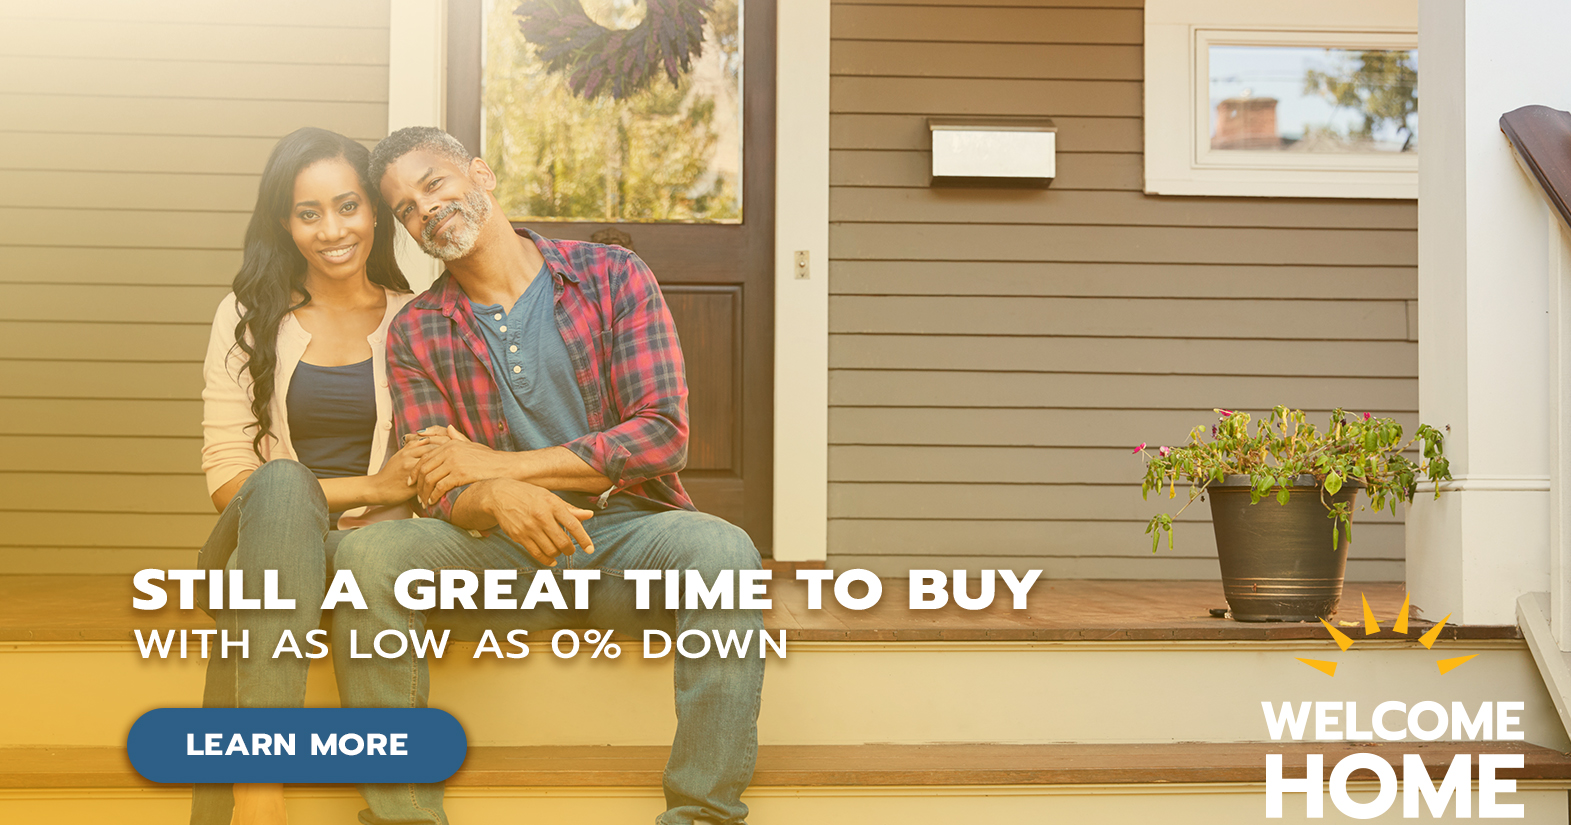 couple on front porch promoting mortgage